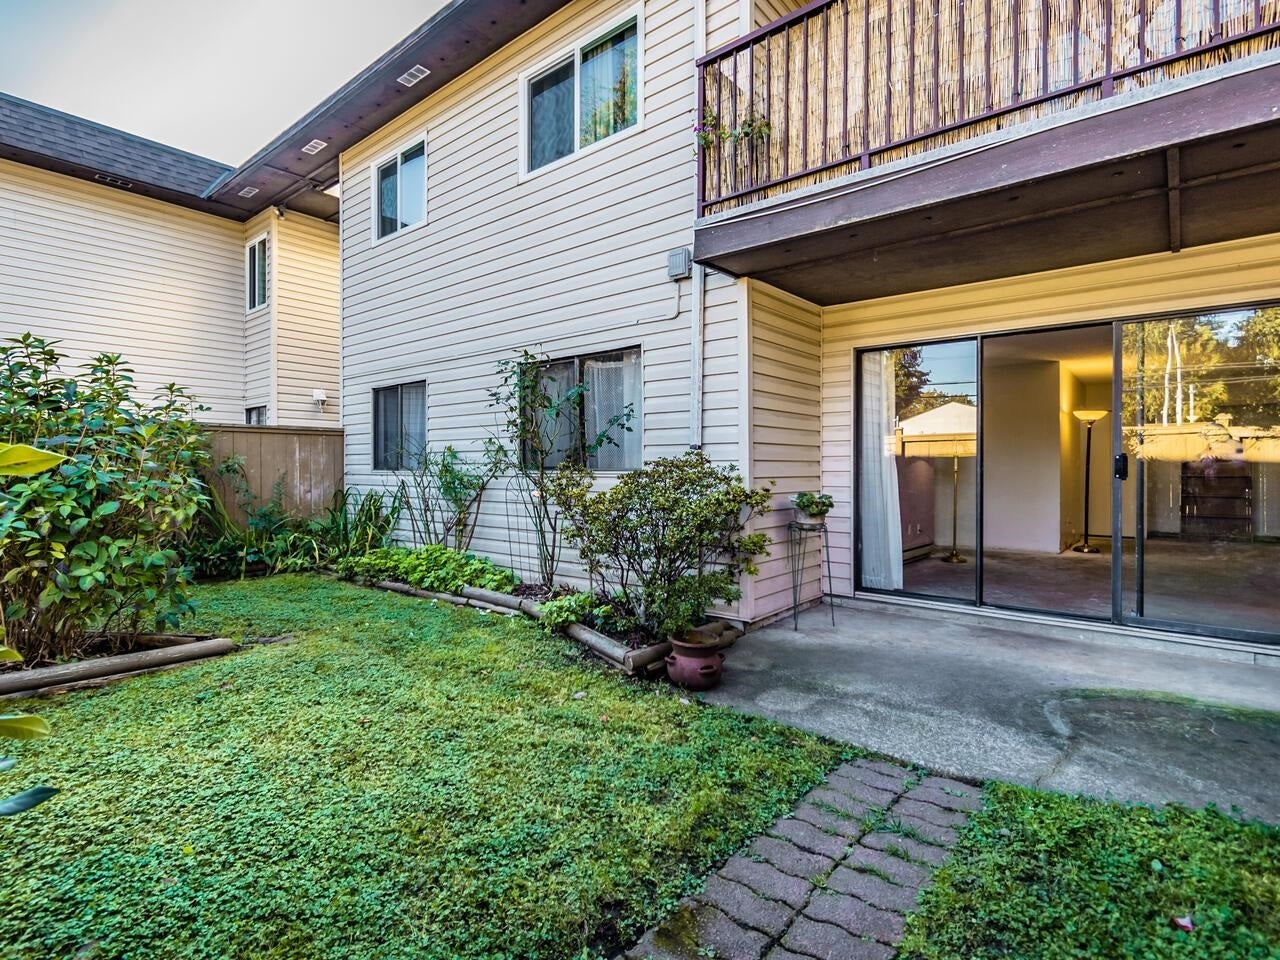 107 5191 203 STREET - Langley City Apartment/Condo for sale, 2 Bedrooms (R2625712) - #16